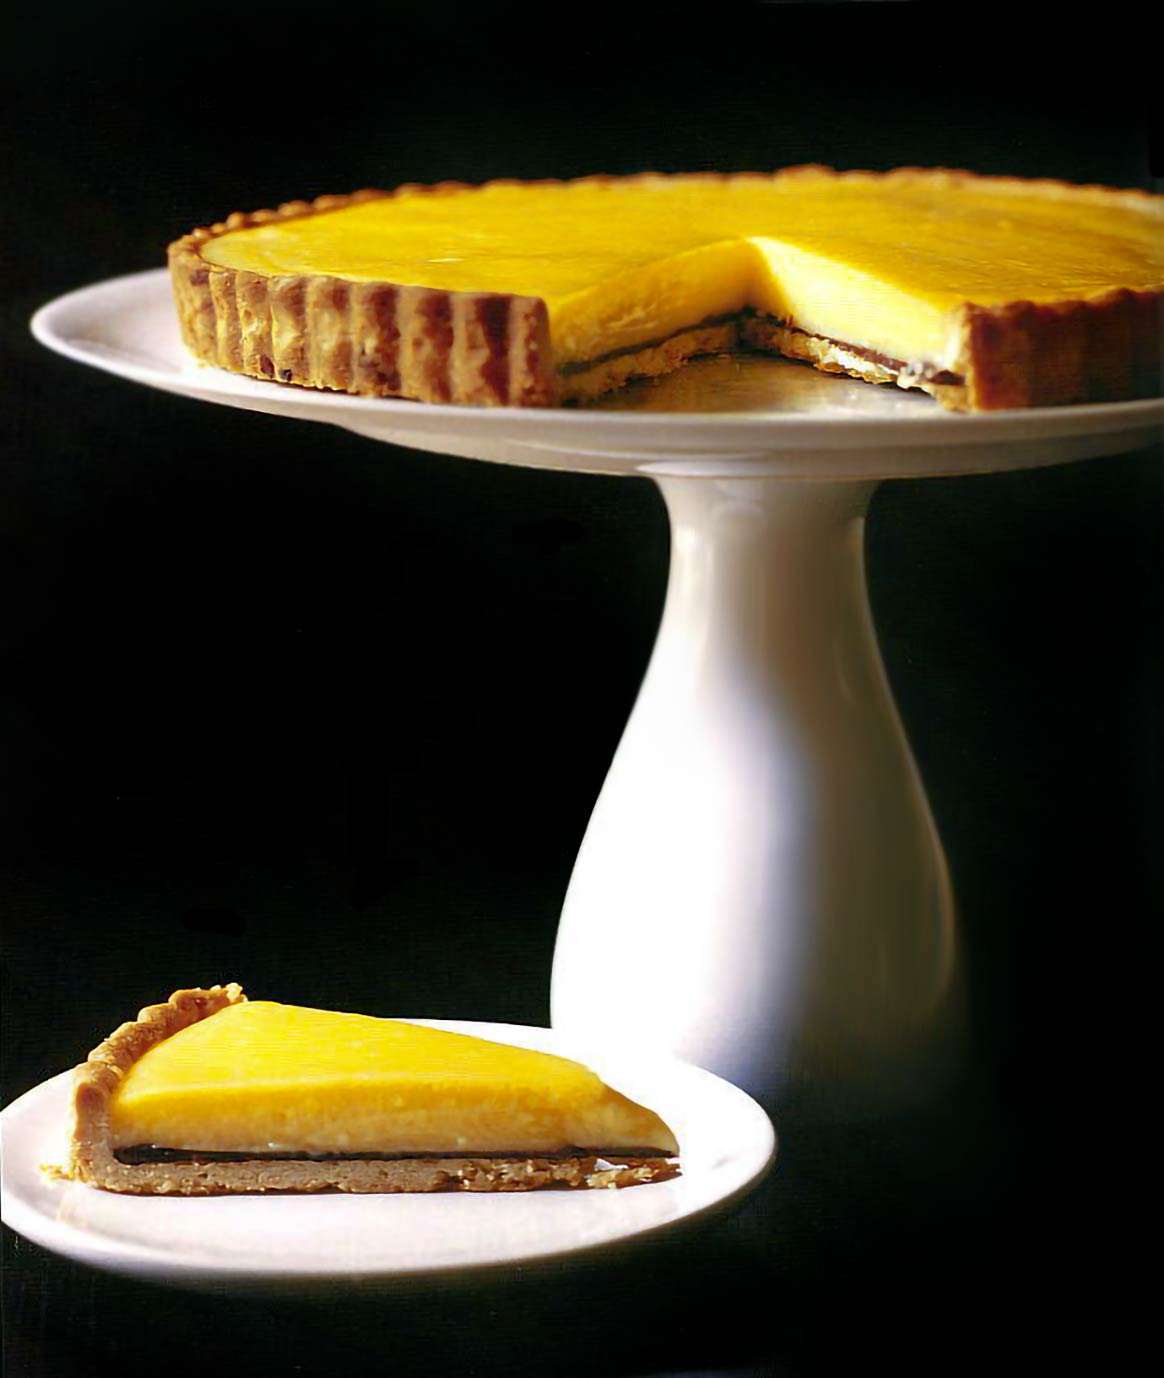 Meyer lemon tart on a white cake stand and a slice of tart on a small plate, black background